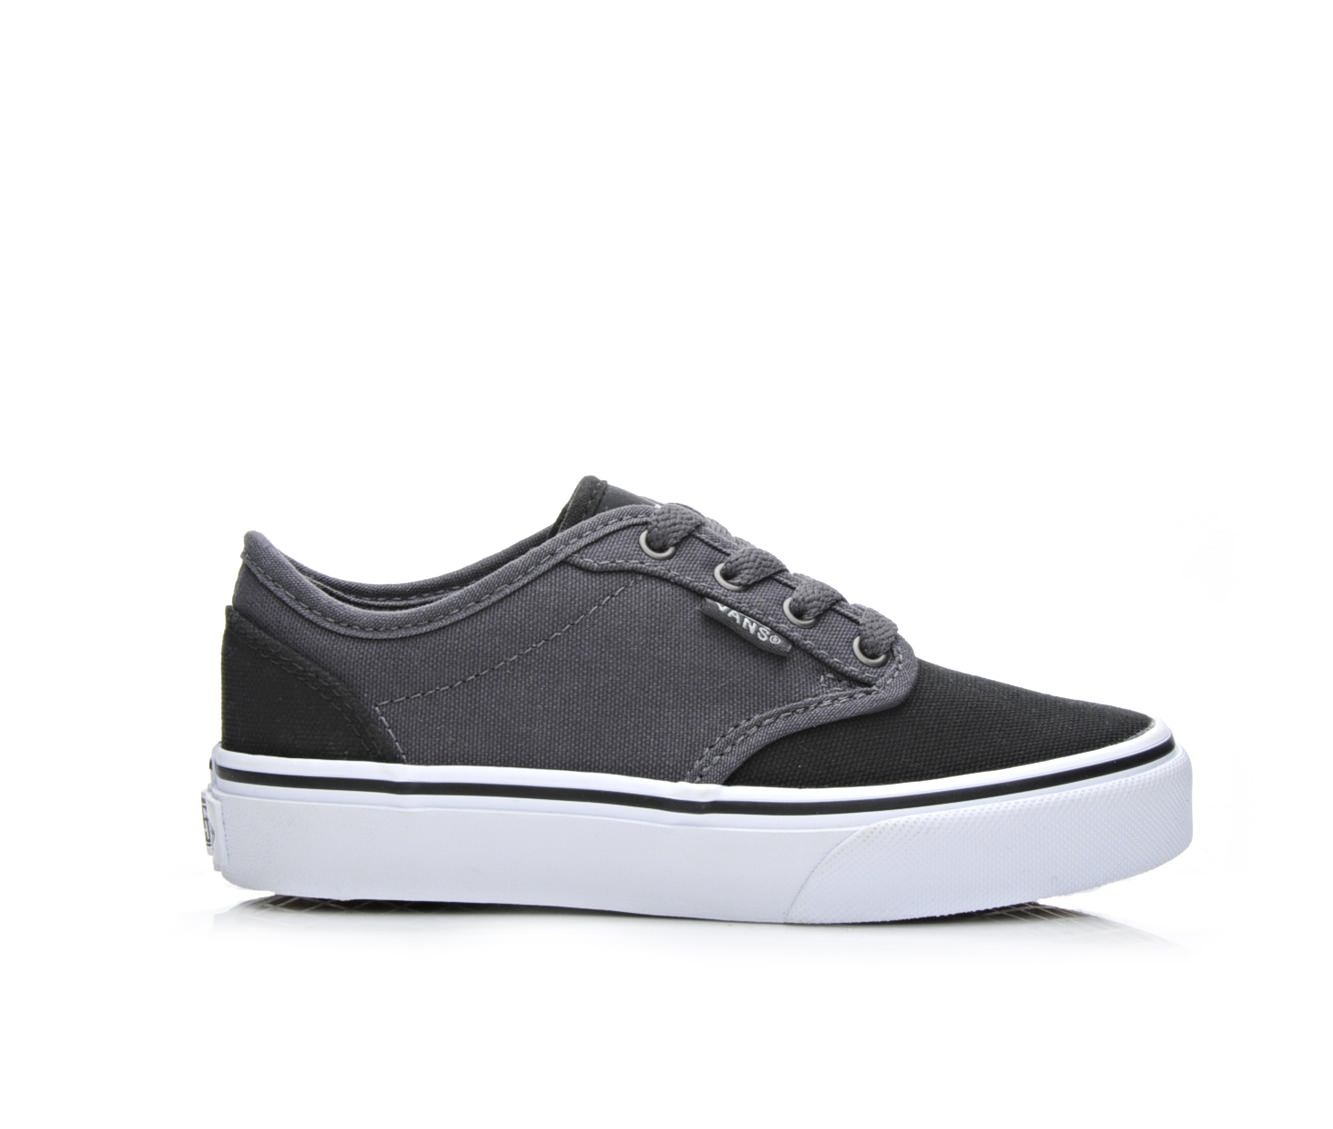 Boys' Vans Atwood Skate Shoes (Grey)